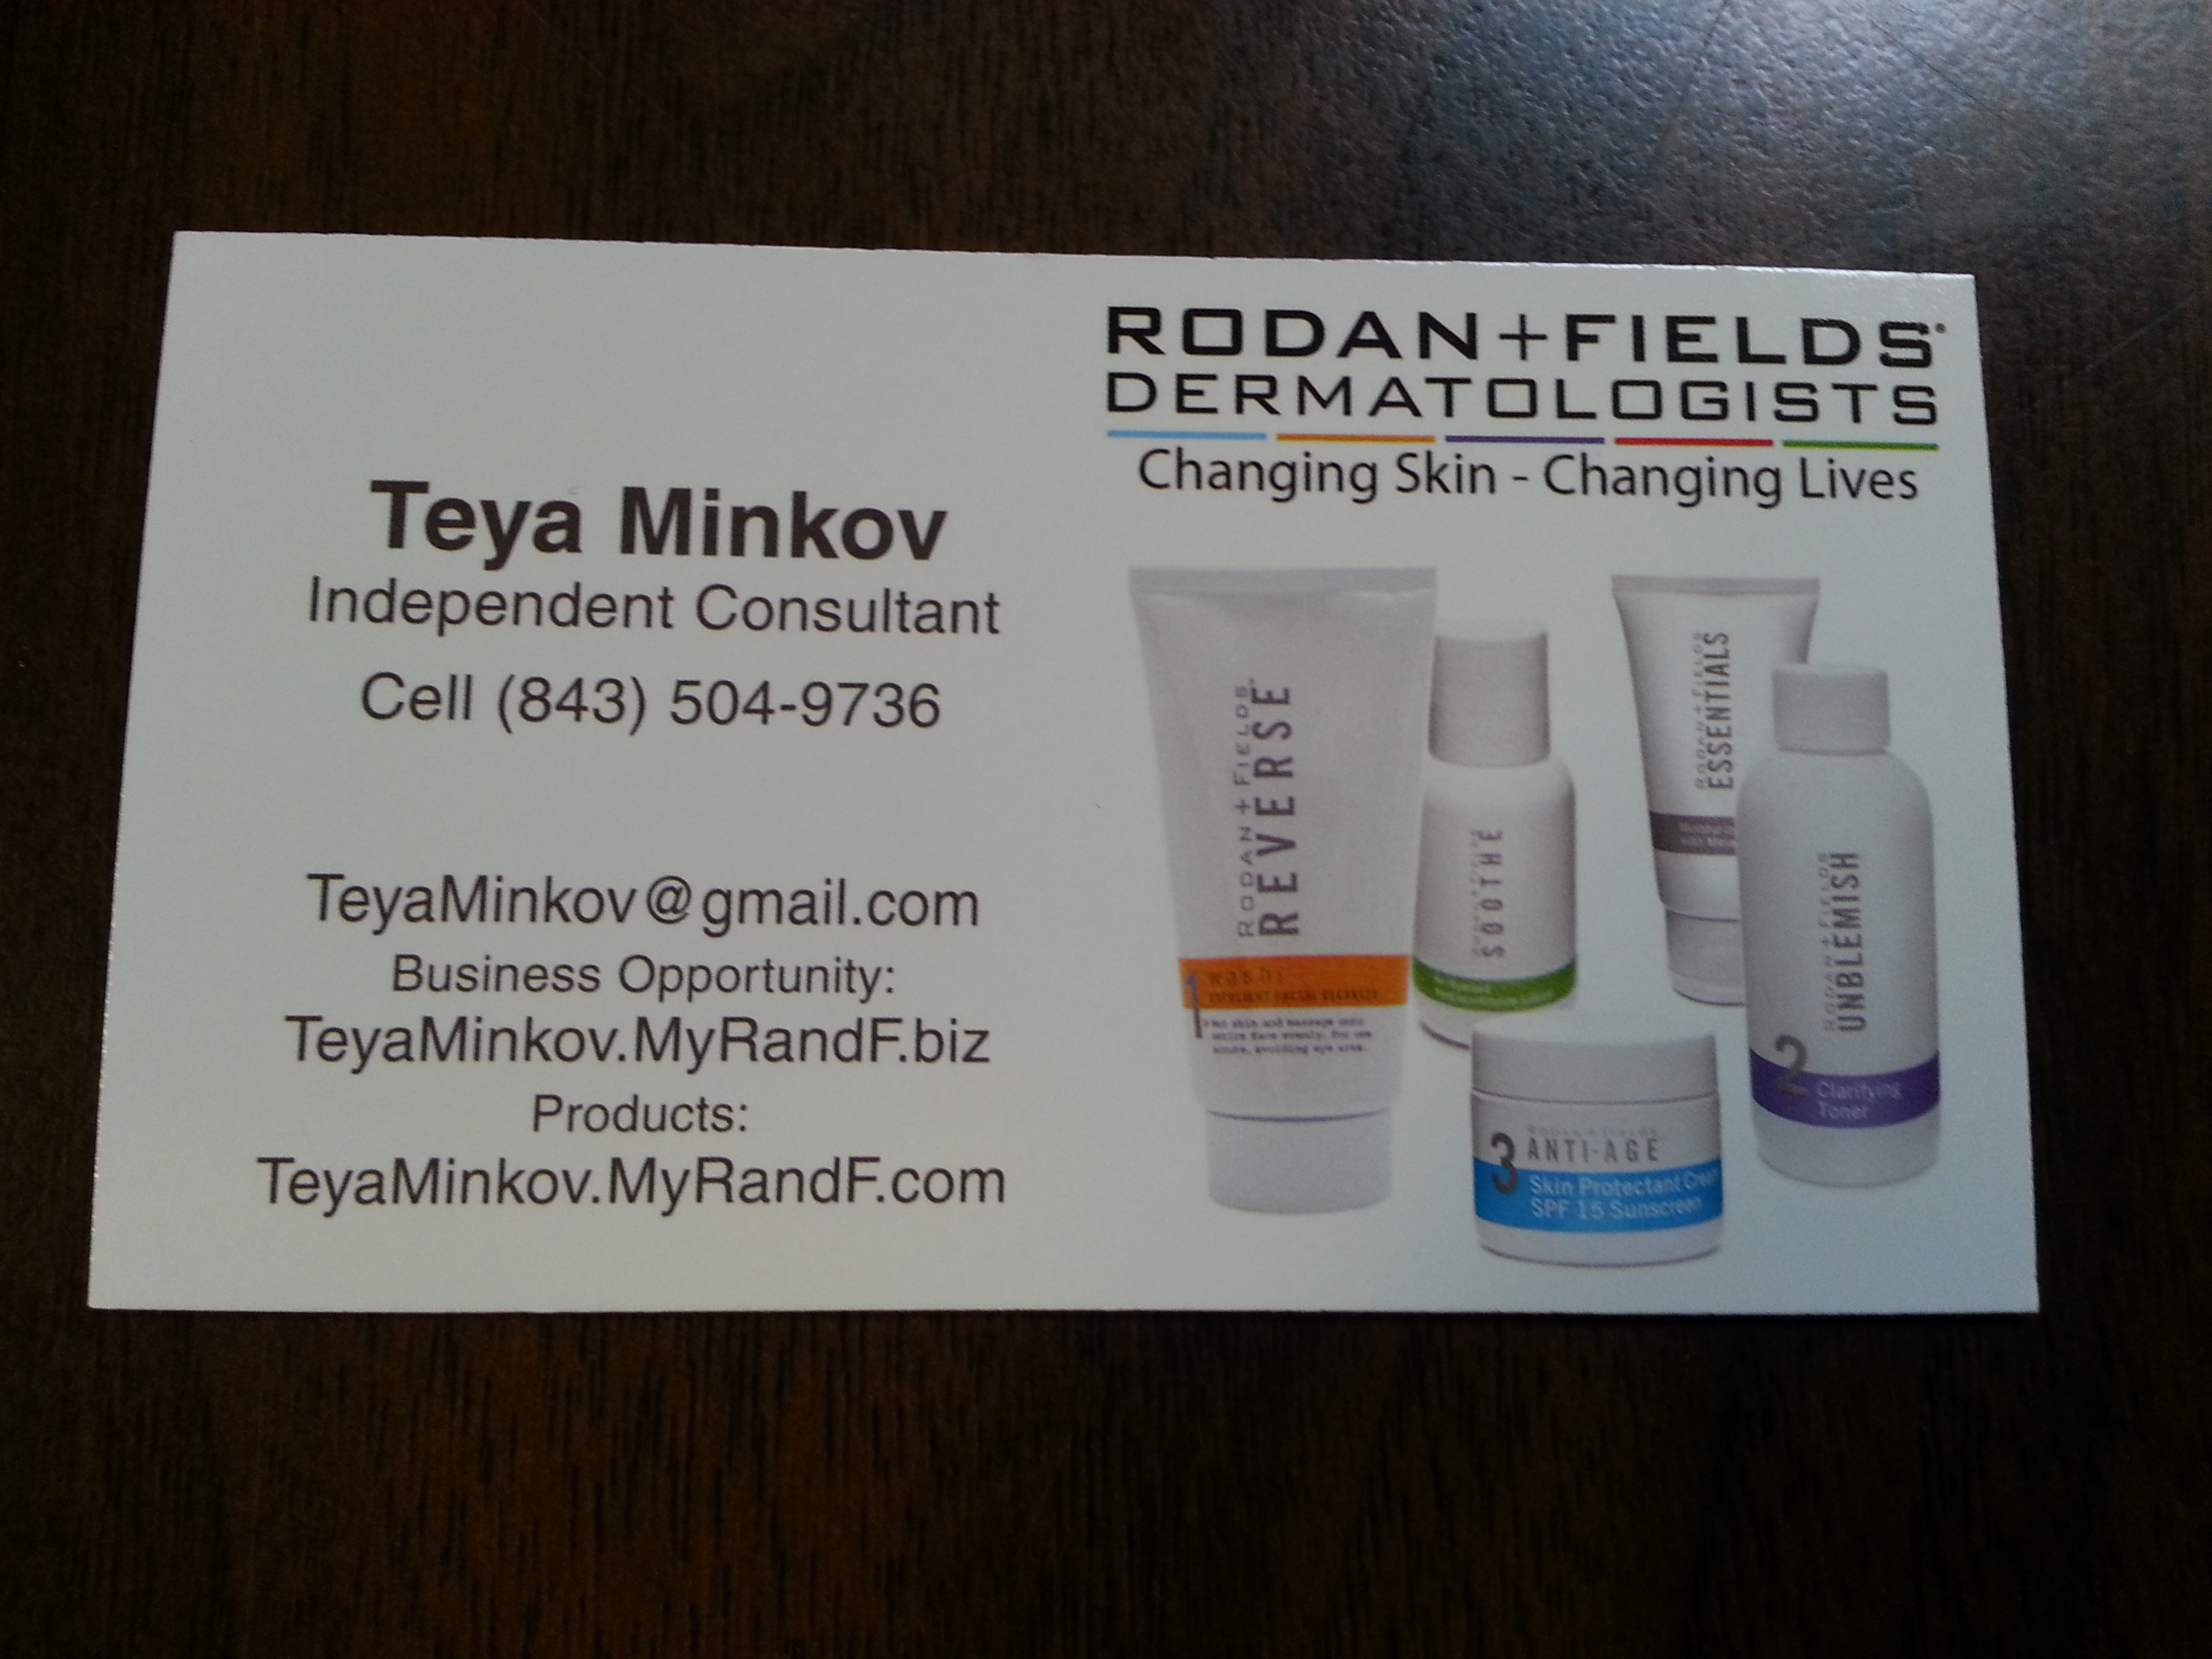 New Images Of Rodan Fields Business Cards Business Cards And - Rodan and fields business card template